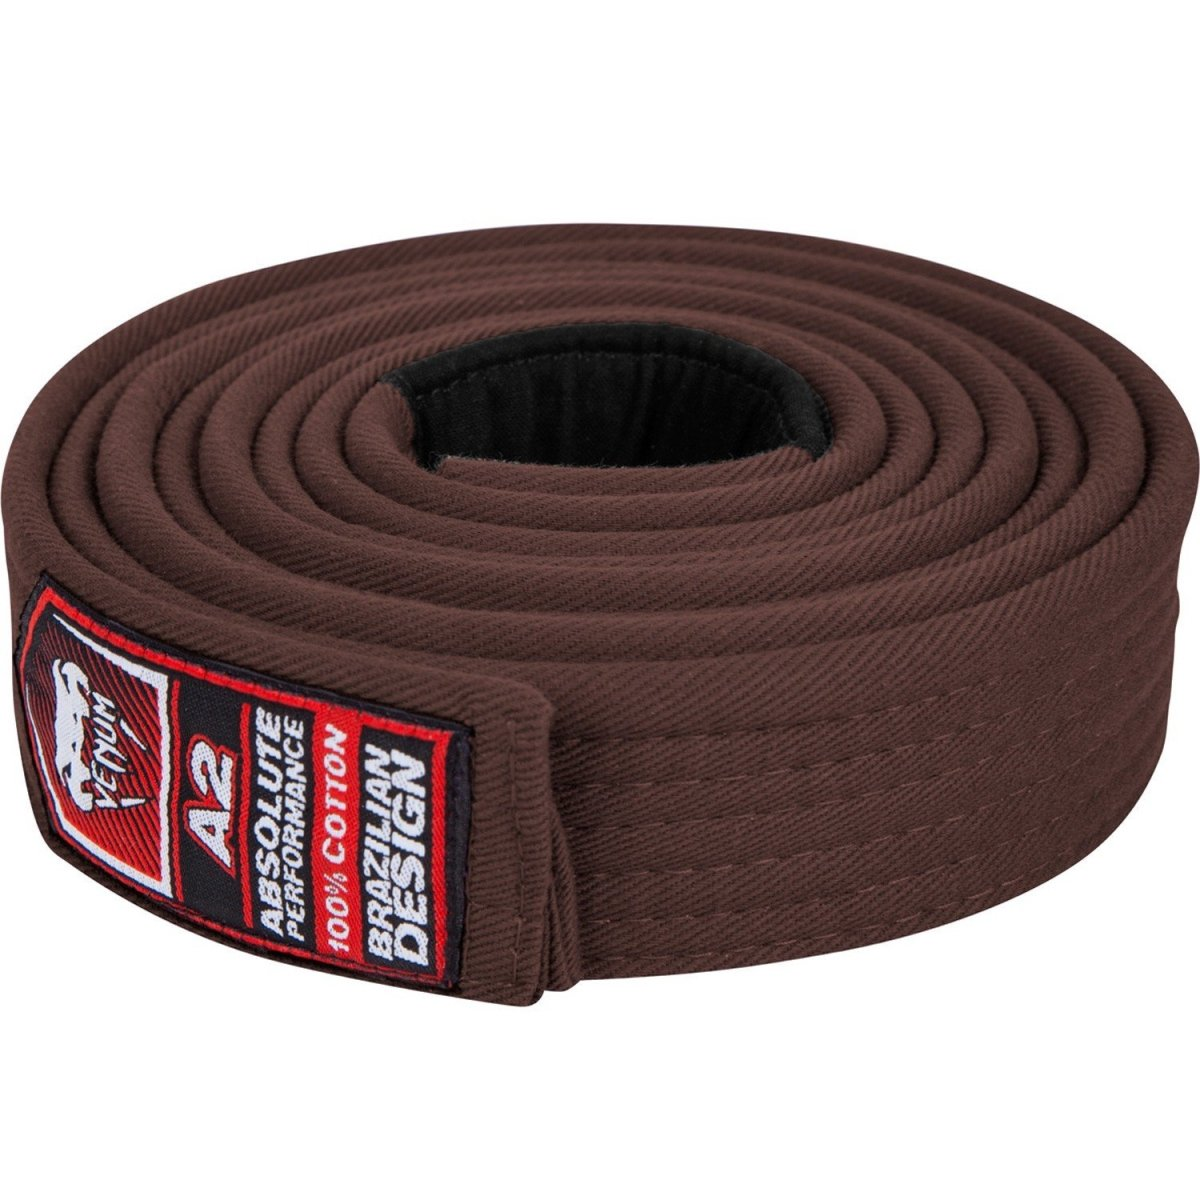 VENUM BJJ BELT BROWN - MSM FIGHT SHOPVENUM